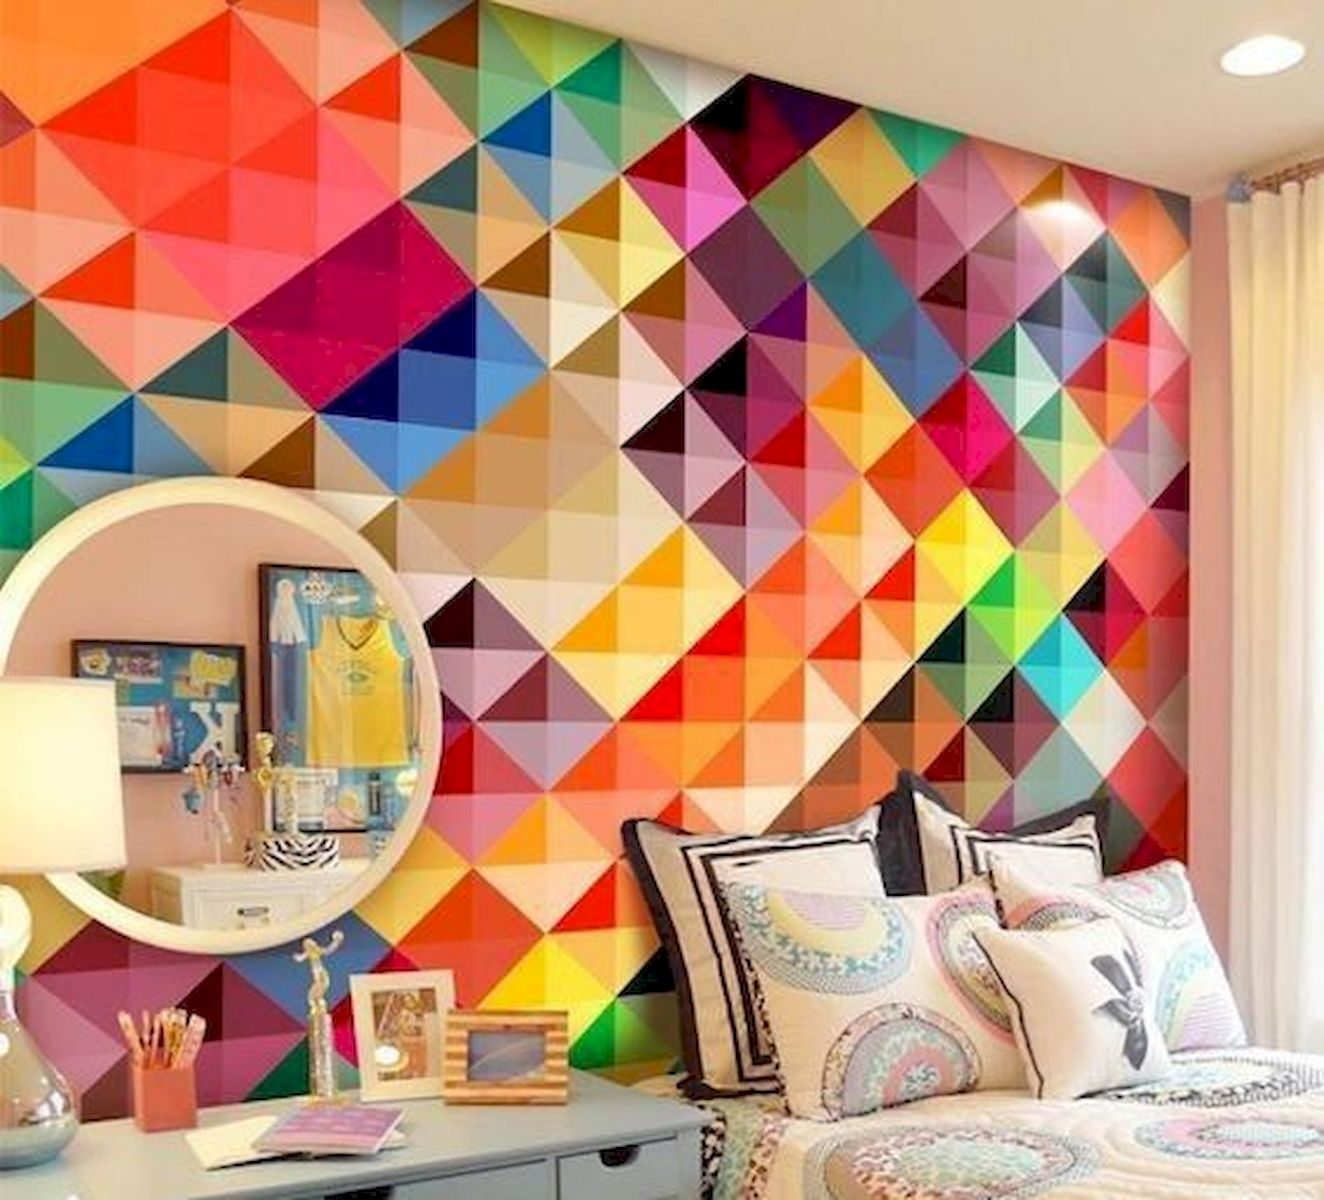 70 Beautiful DIY Colorful Bedroom Design Ideas and Remodel (42)